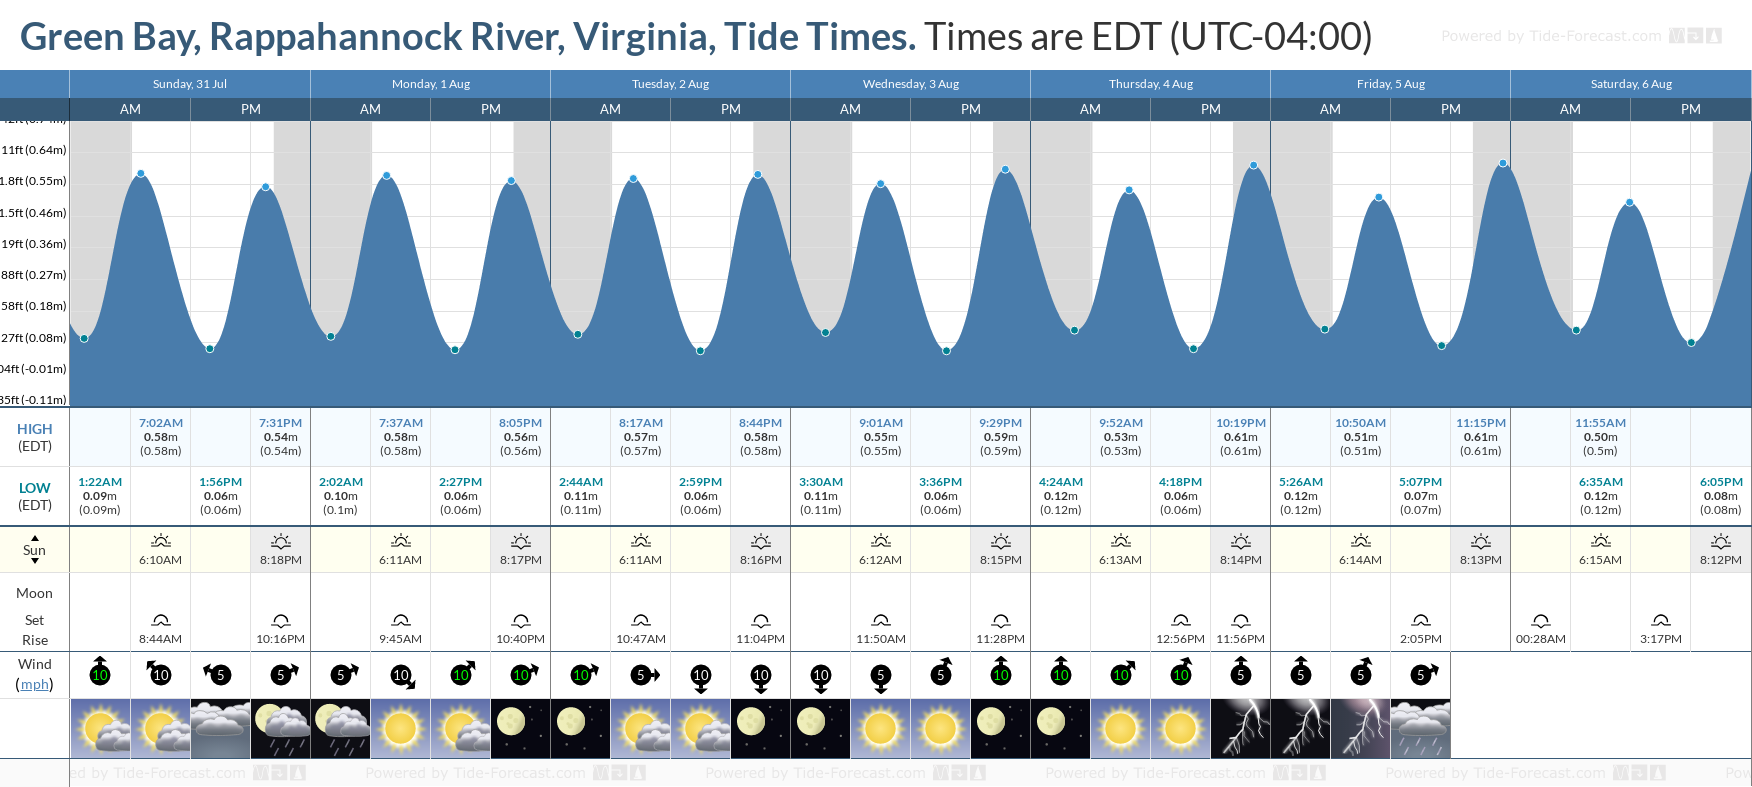 Green Bay, Rappahannock River, Virginia Tide Chart including high and low tide tide times for the next 7 days